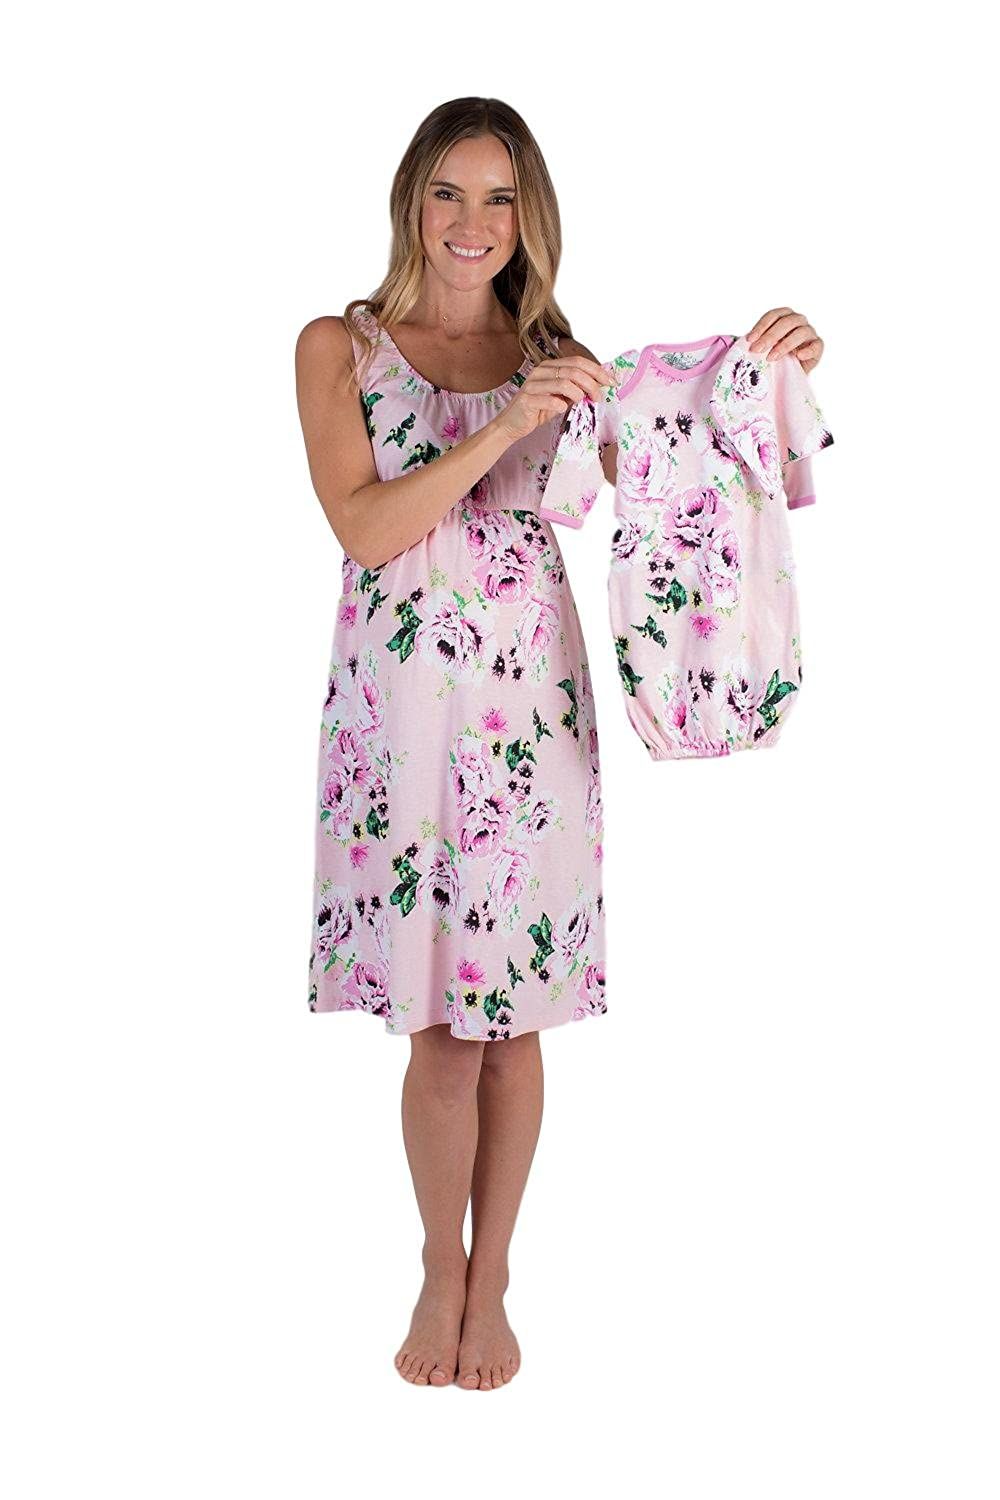 3af682ecf3f8 Baby Be Mine Maternity Nursing Nightgown   Matching Baby Layette Set ...